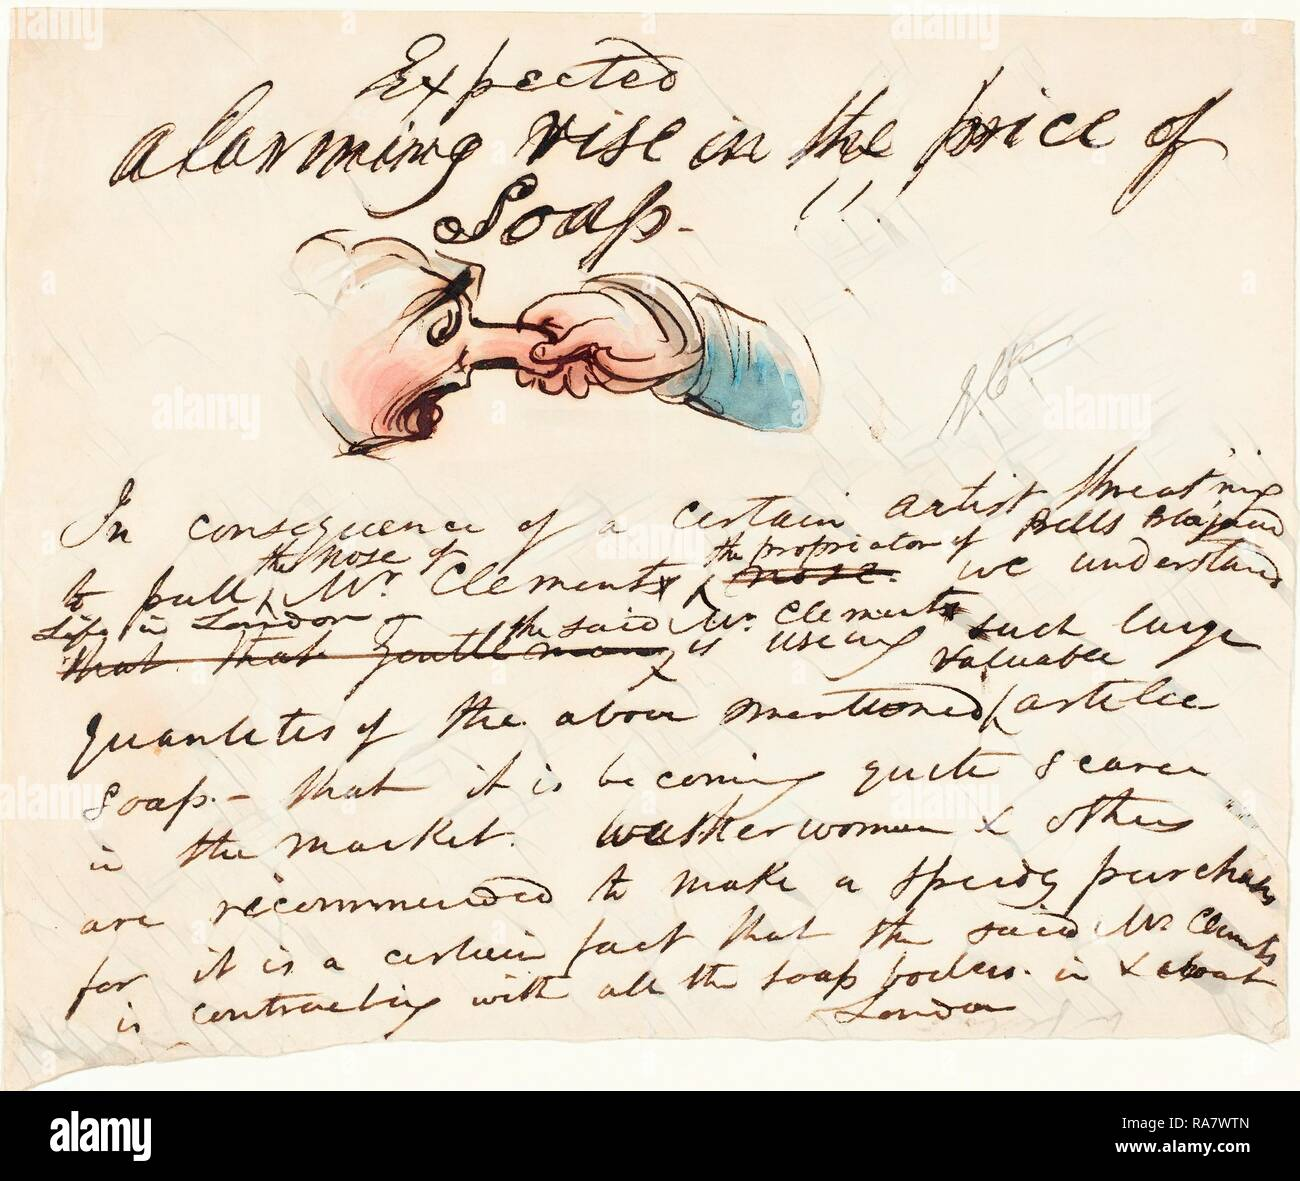 George Cruikshank (British, 1792 - 1878), 'Expected--alarming rise in the price of soap!', pen and brown ink with reimagined Stock Photo